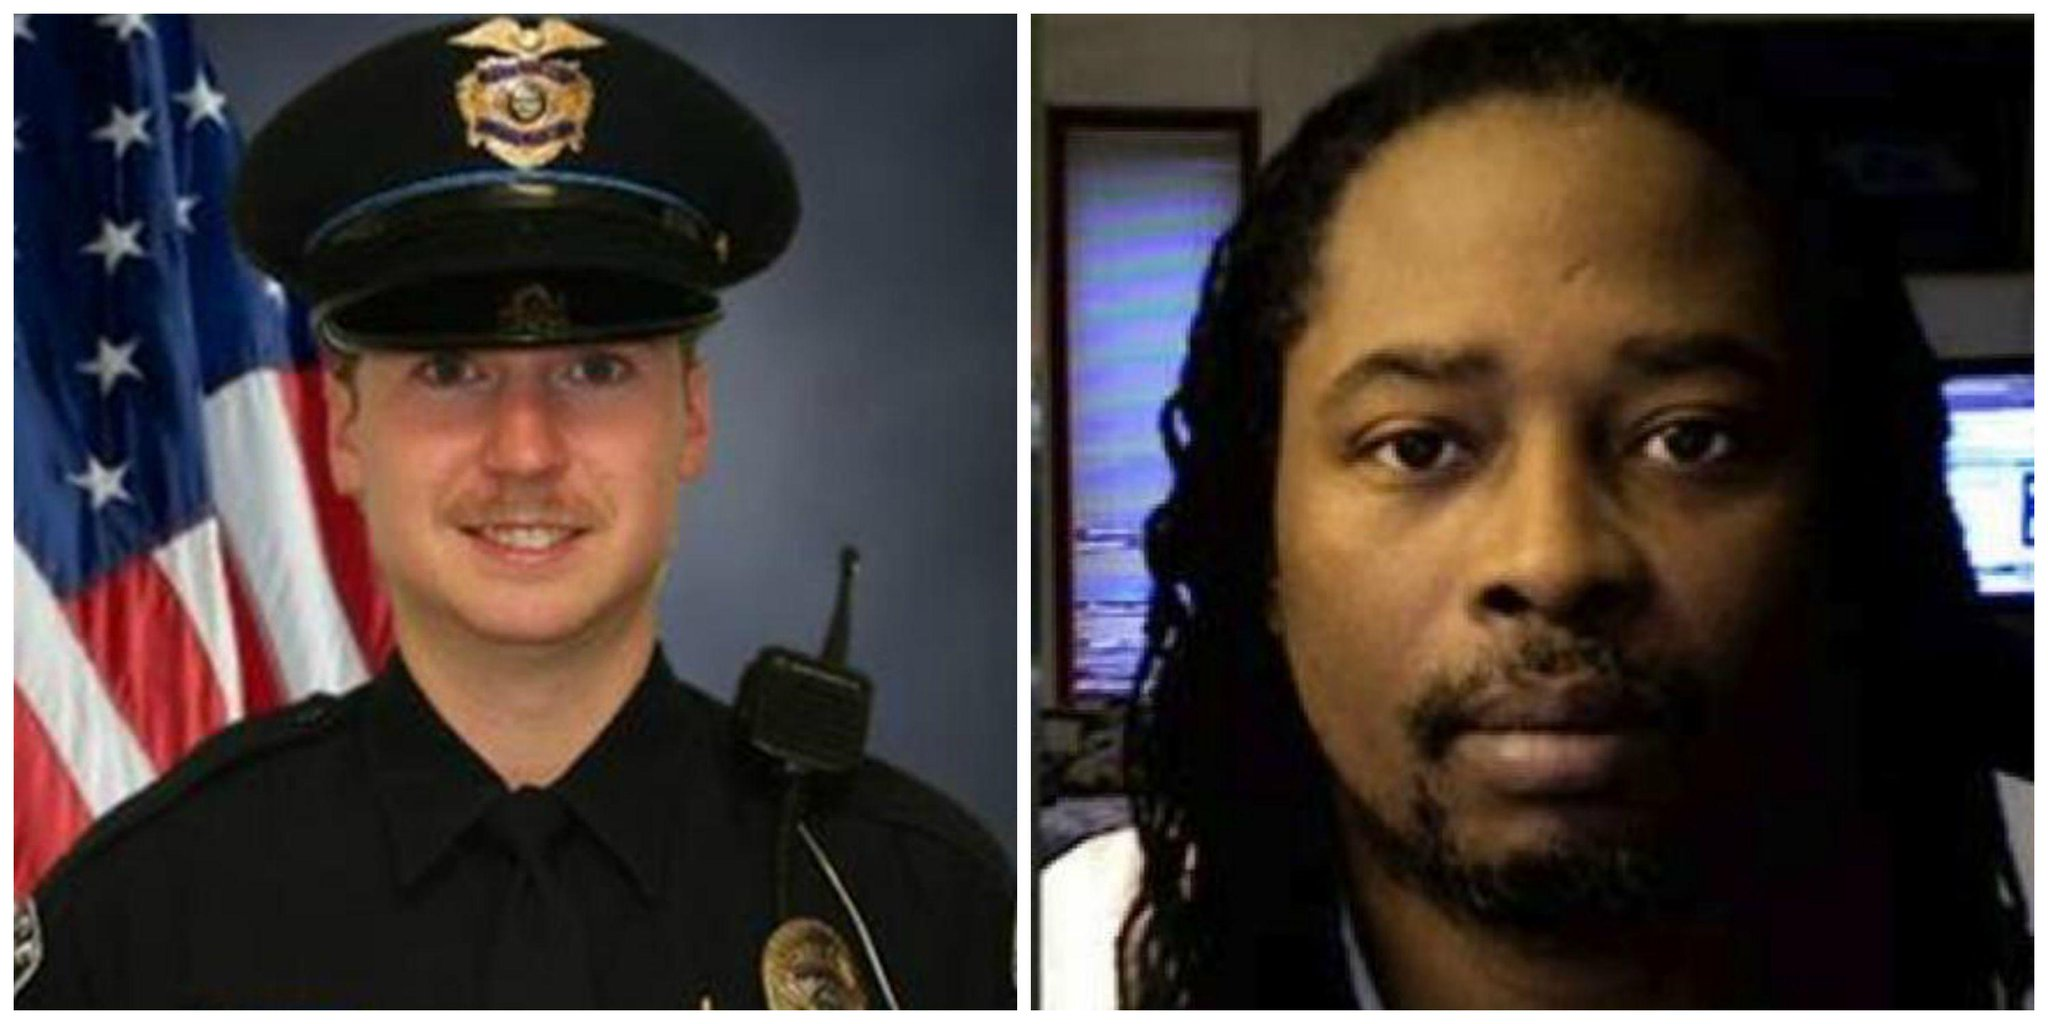 RT @GlobalGrind: Police officer Ray Tensing indicted for the murder of unarmed black man #SamDubose http://t.co/I3reWXtii7 http://t.co/QATy…